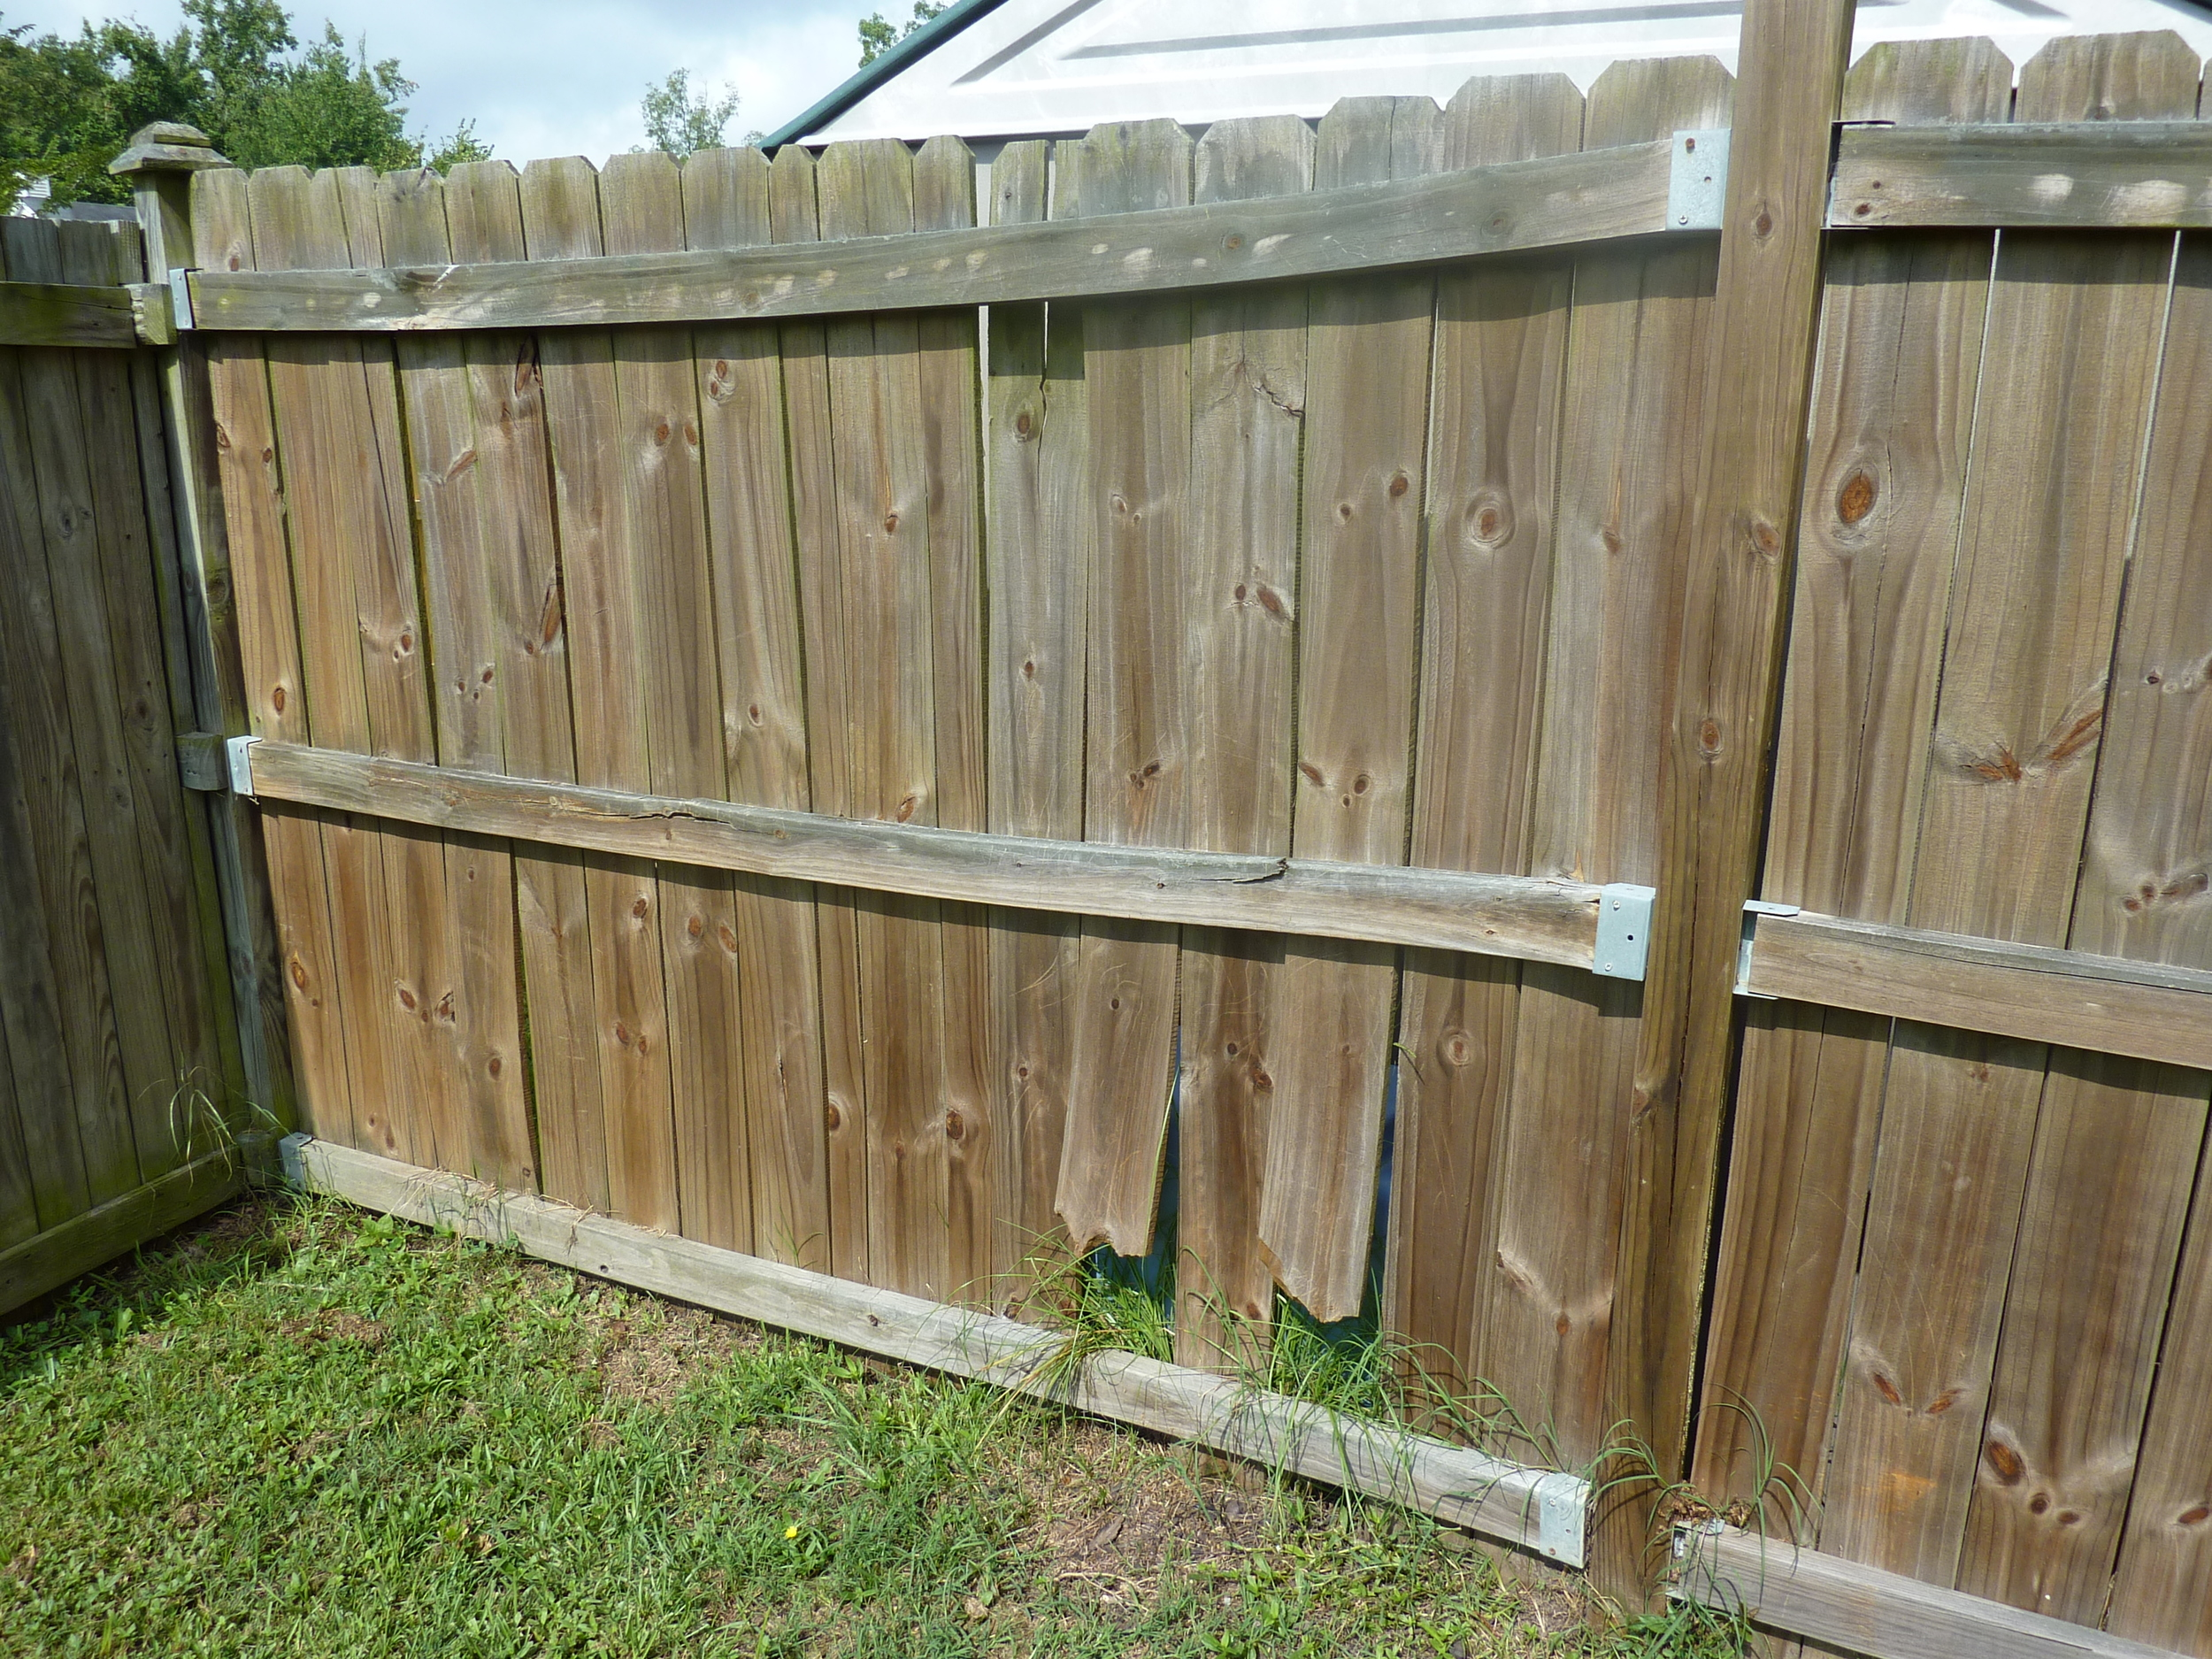 Wood Fence That Is Warping, Twisting, Moving, Shrinking and Cracking In Nashville TN.